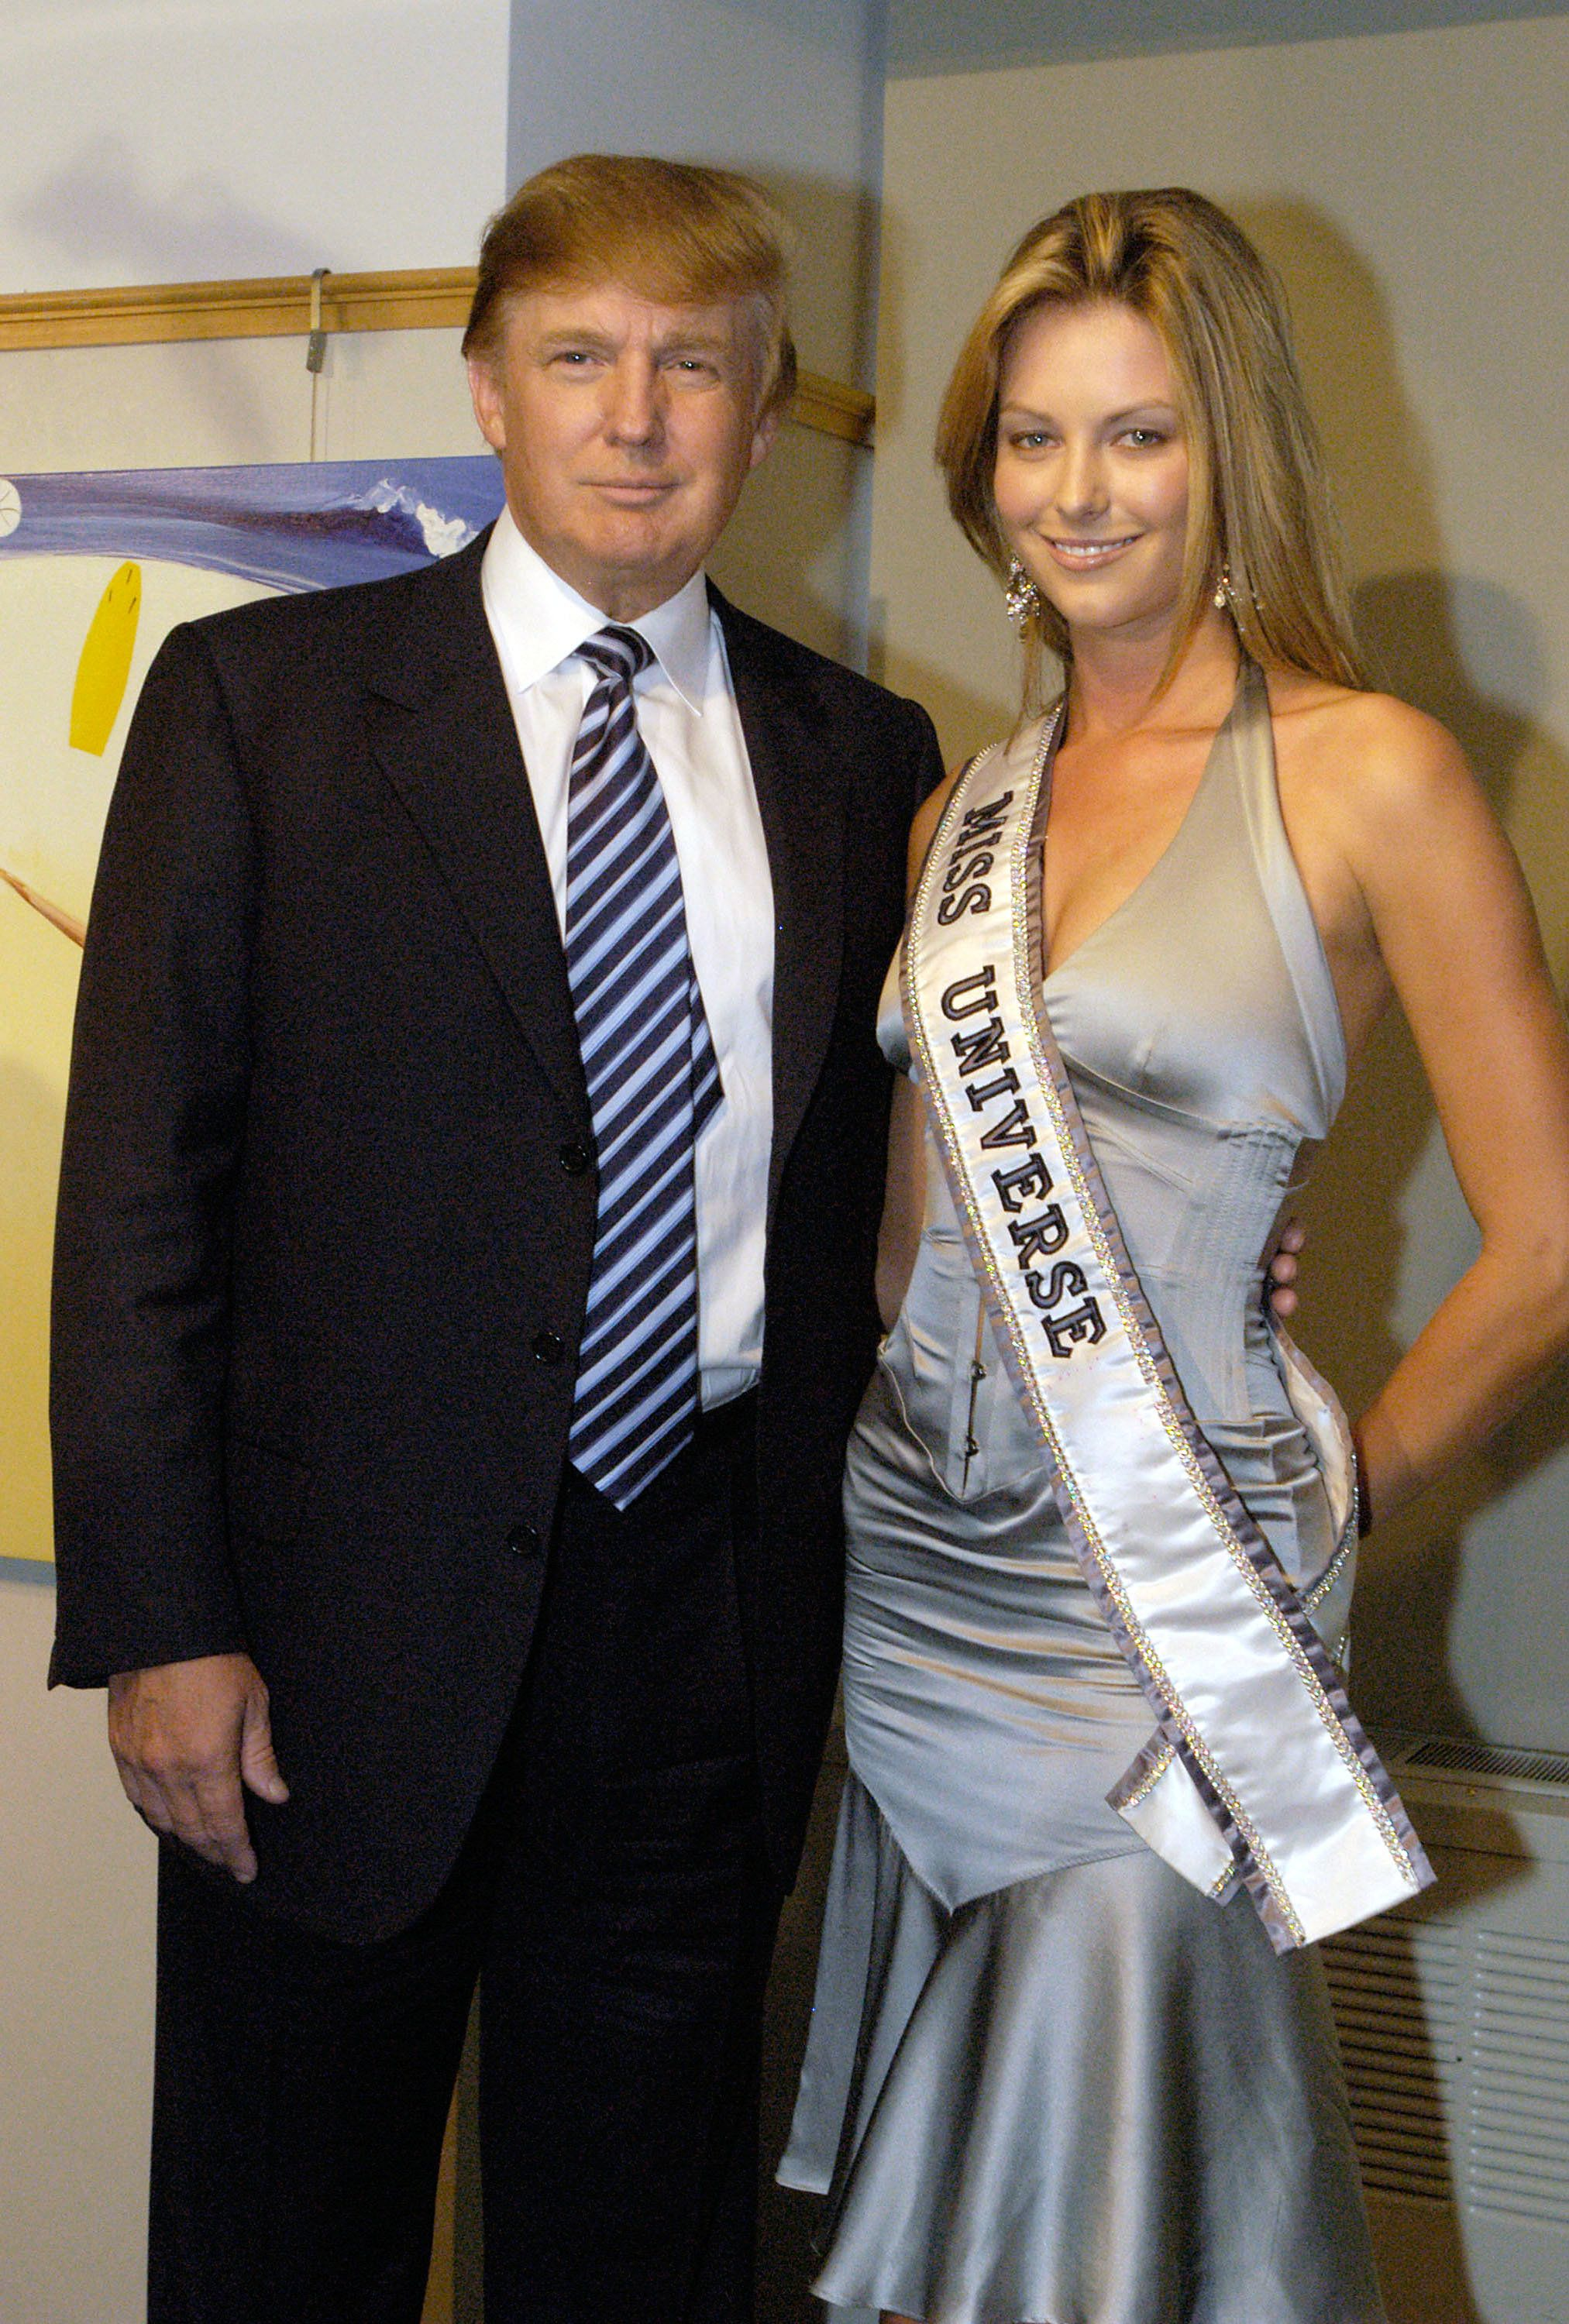 NEW YORK - JULY 28:  Donald Trump and Miss Universe Jennifer Hawkins pose for photographers at a cocktail party celebrating her crowning on July 28, 2004 in New York City. The party, hosted by the Hon. Ken Allen, Consul General of Australia was held at the Australian Consulate (Photo by Brownie Medina/Getty Images).